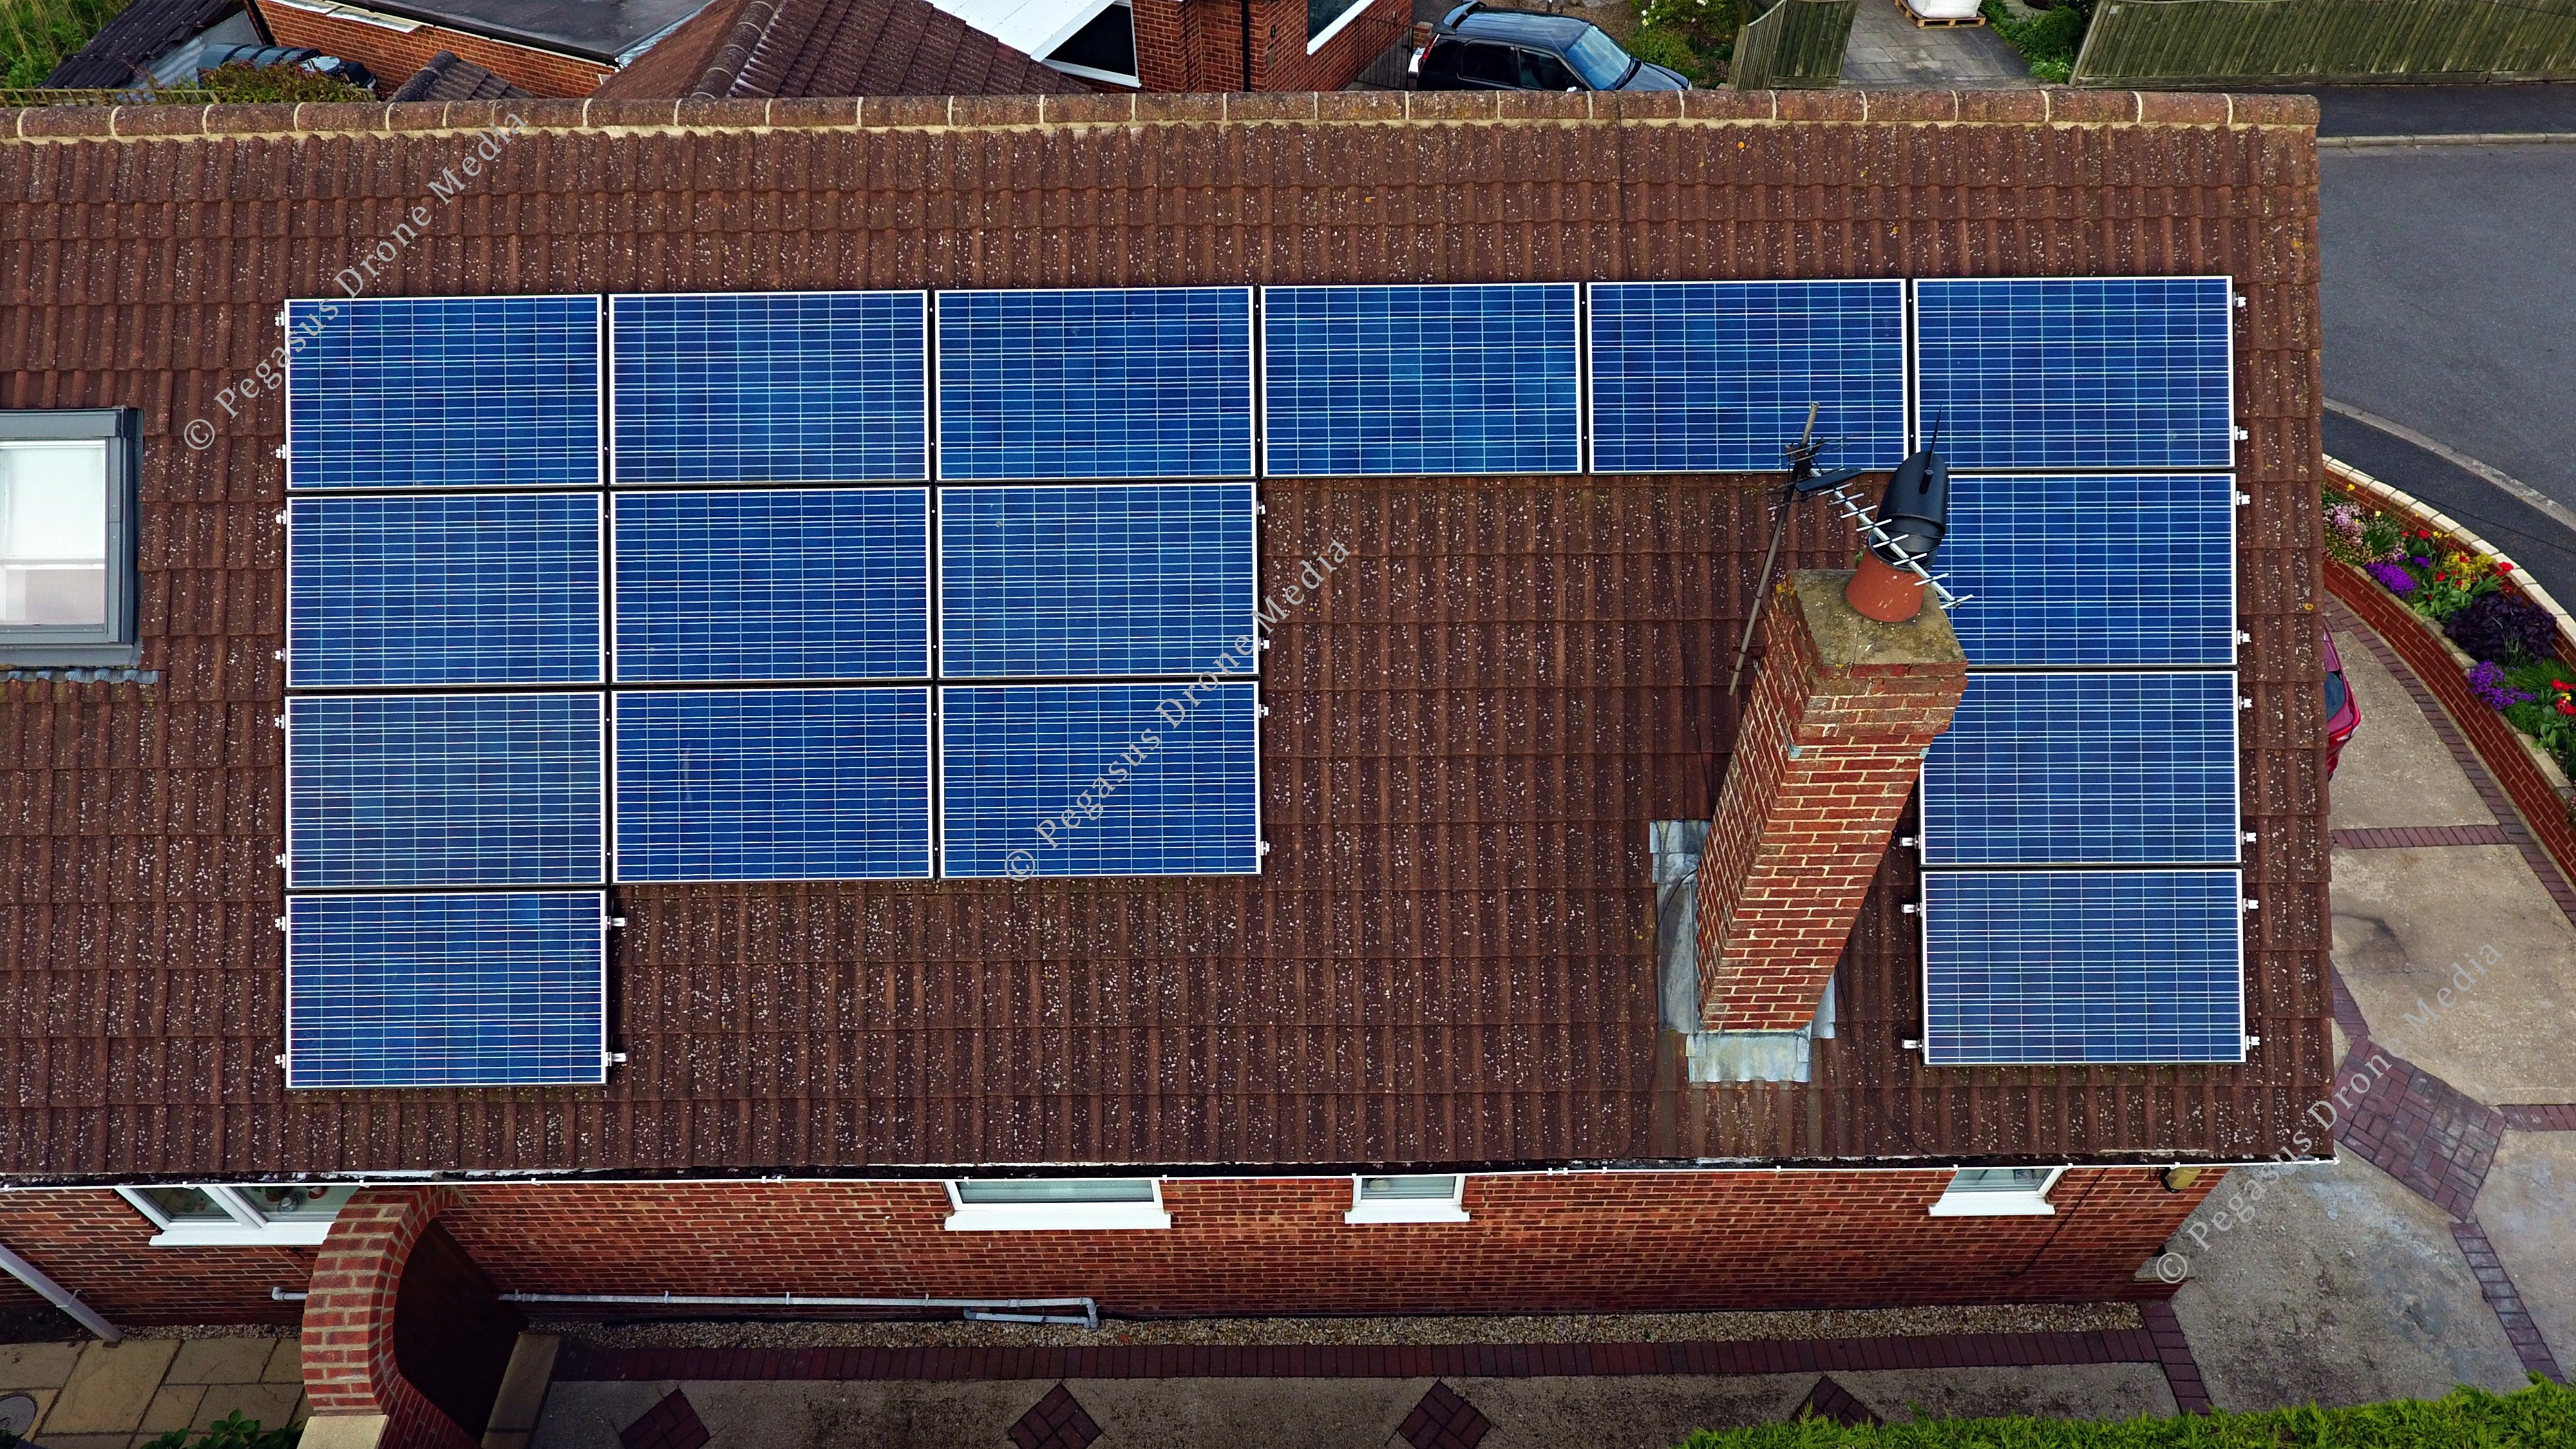 Solar panel inspections by Pegasus Drone Media